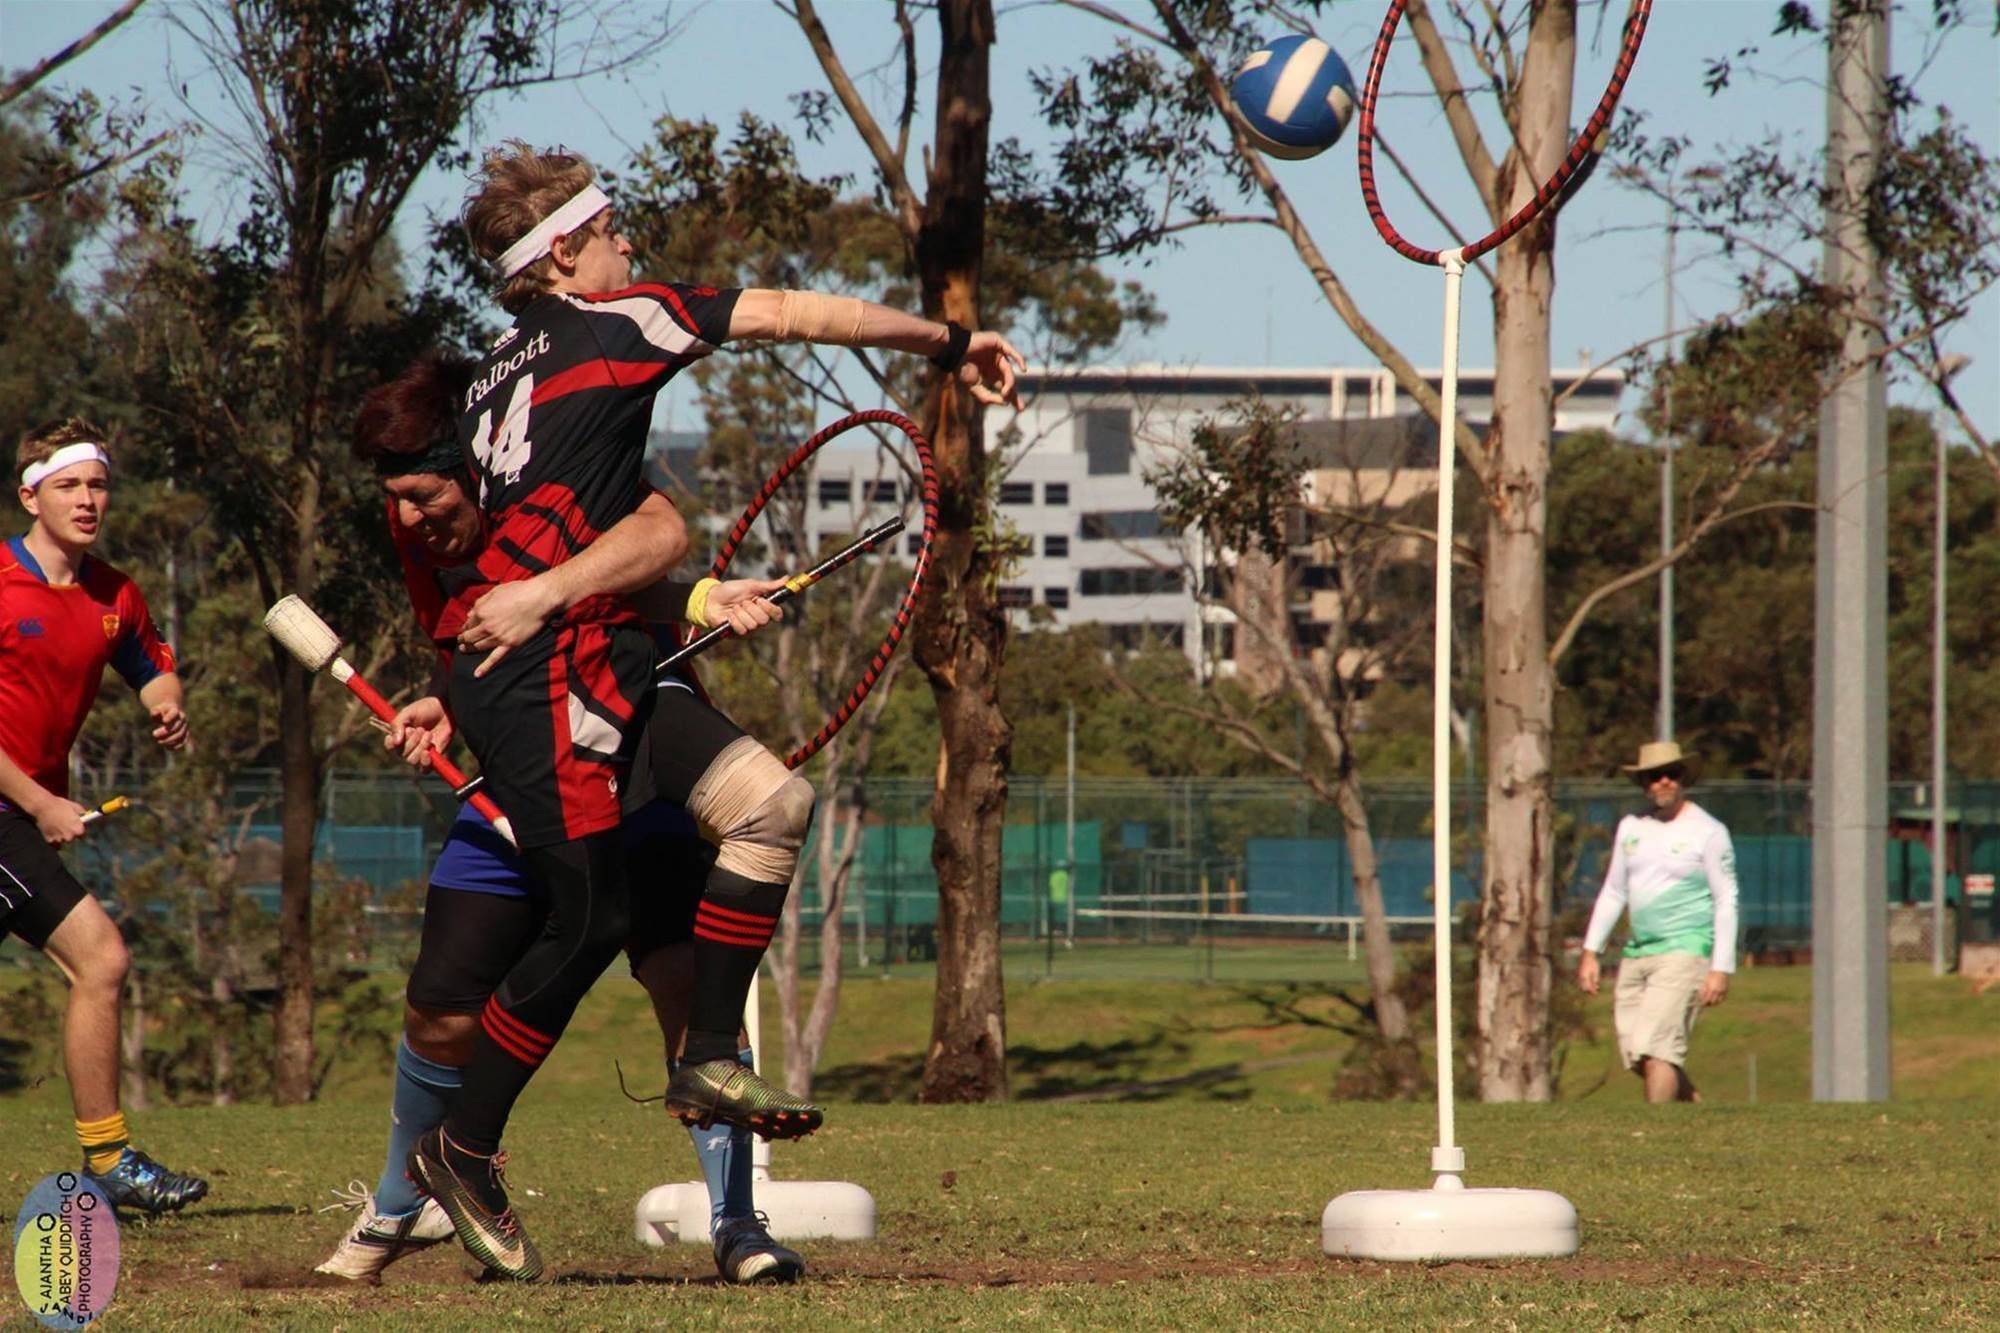 What the quidditch is ultimate?